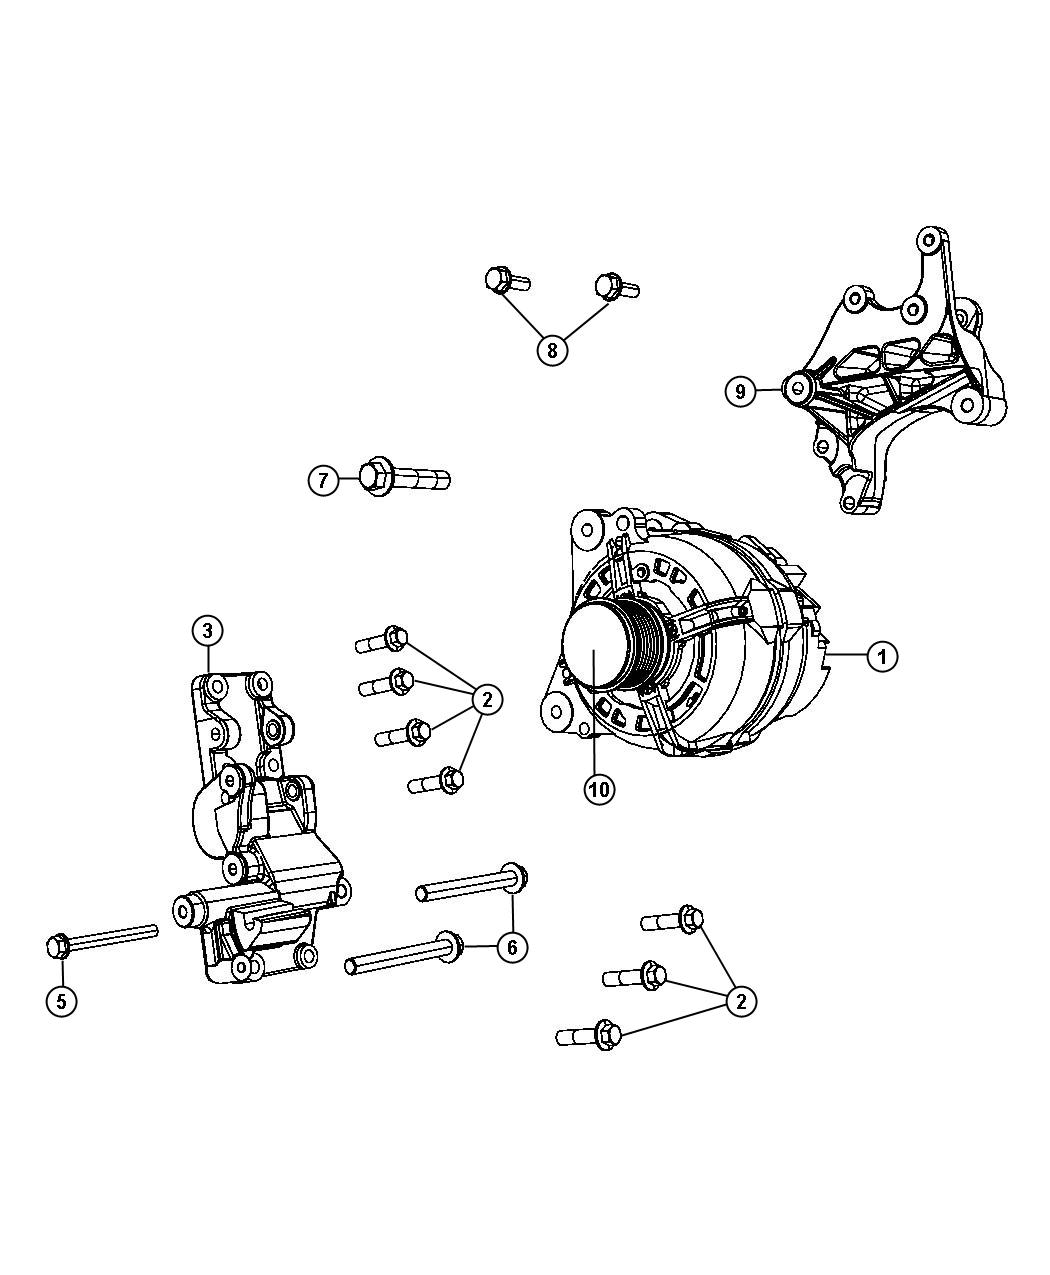 Generator Alternator And Related Parts